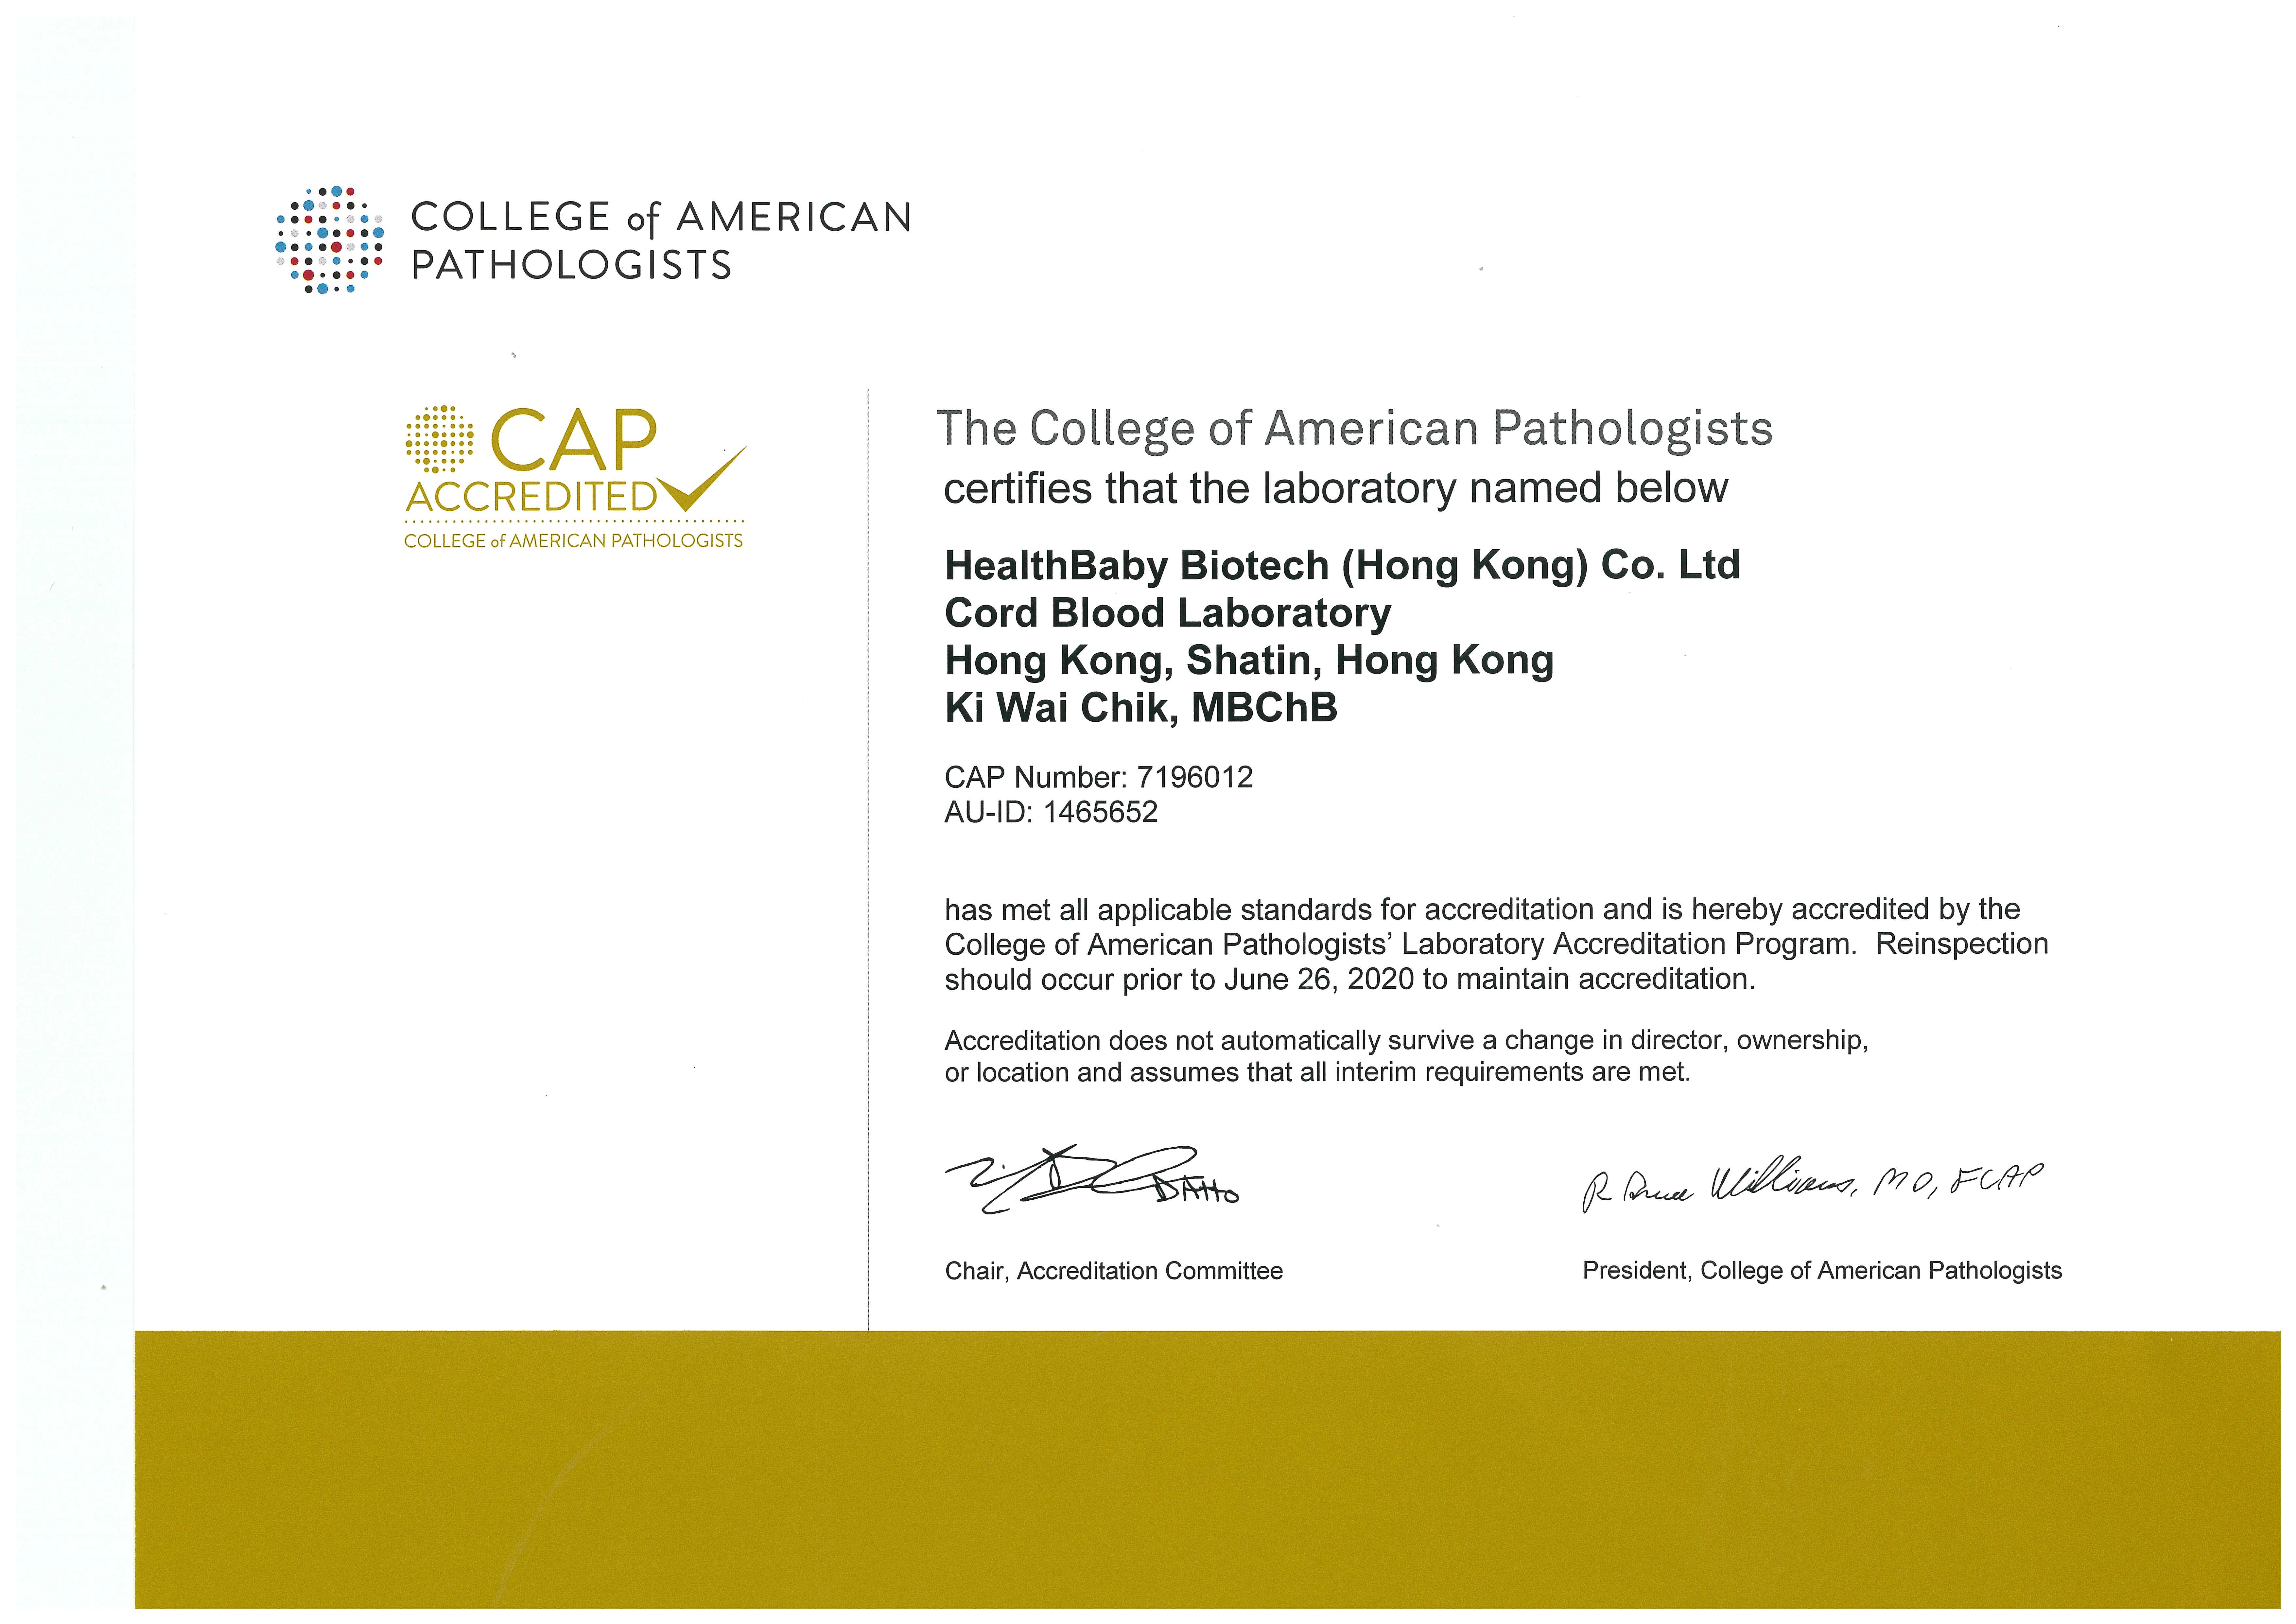 College of American Pathologists (CAP)